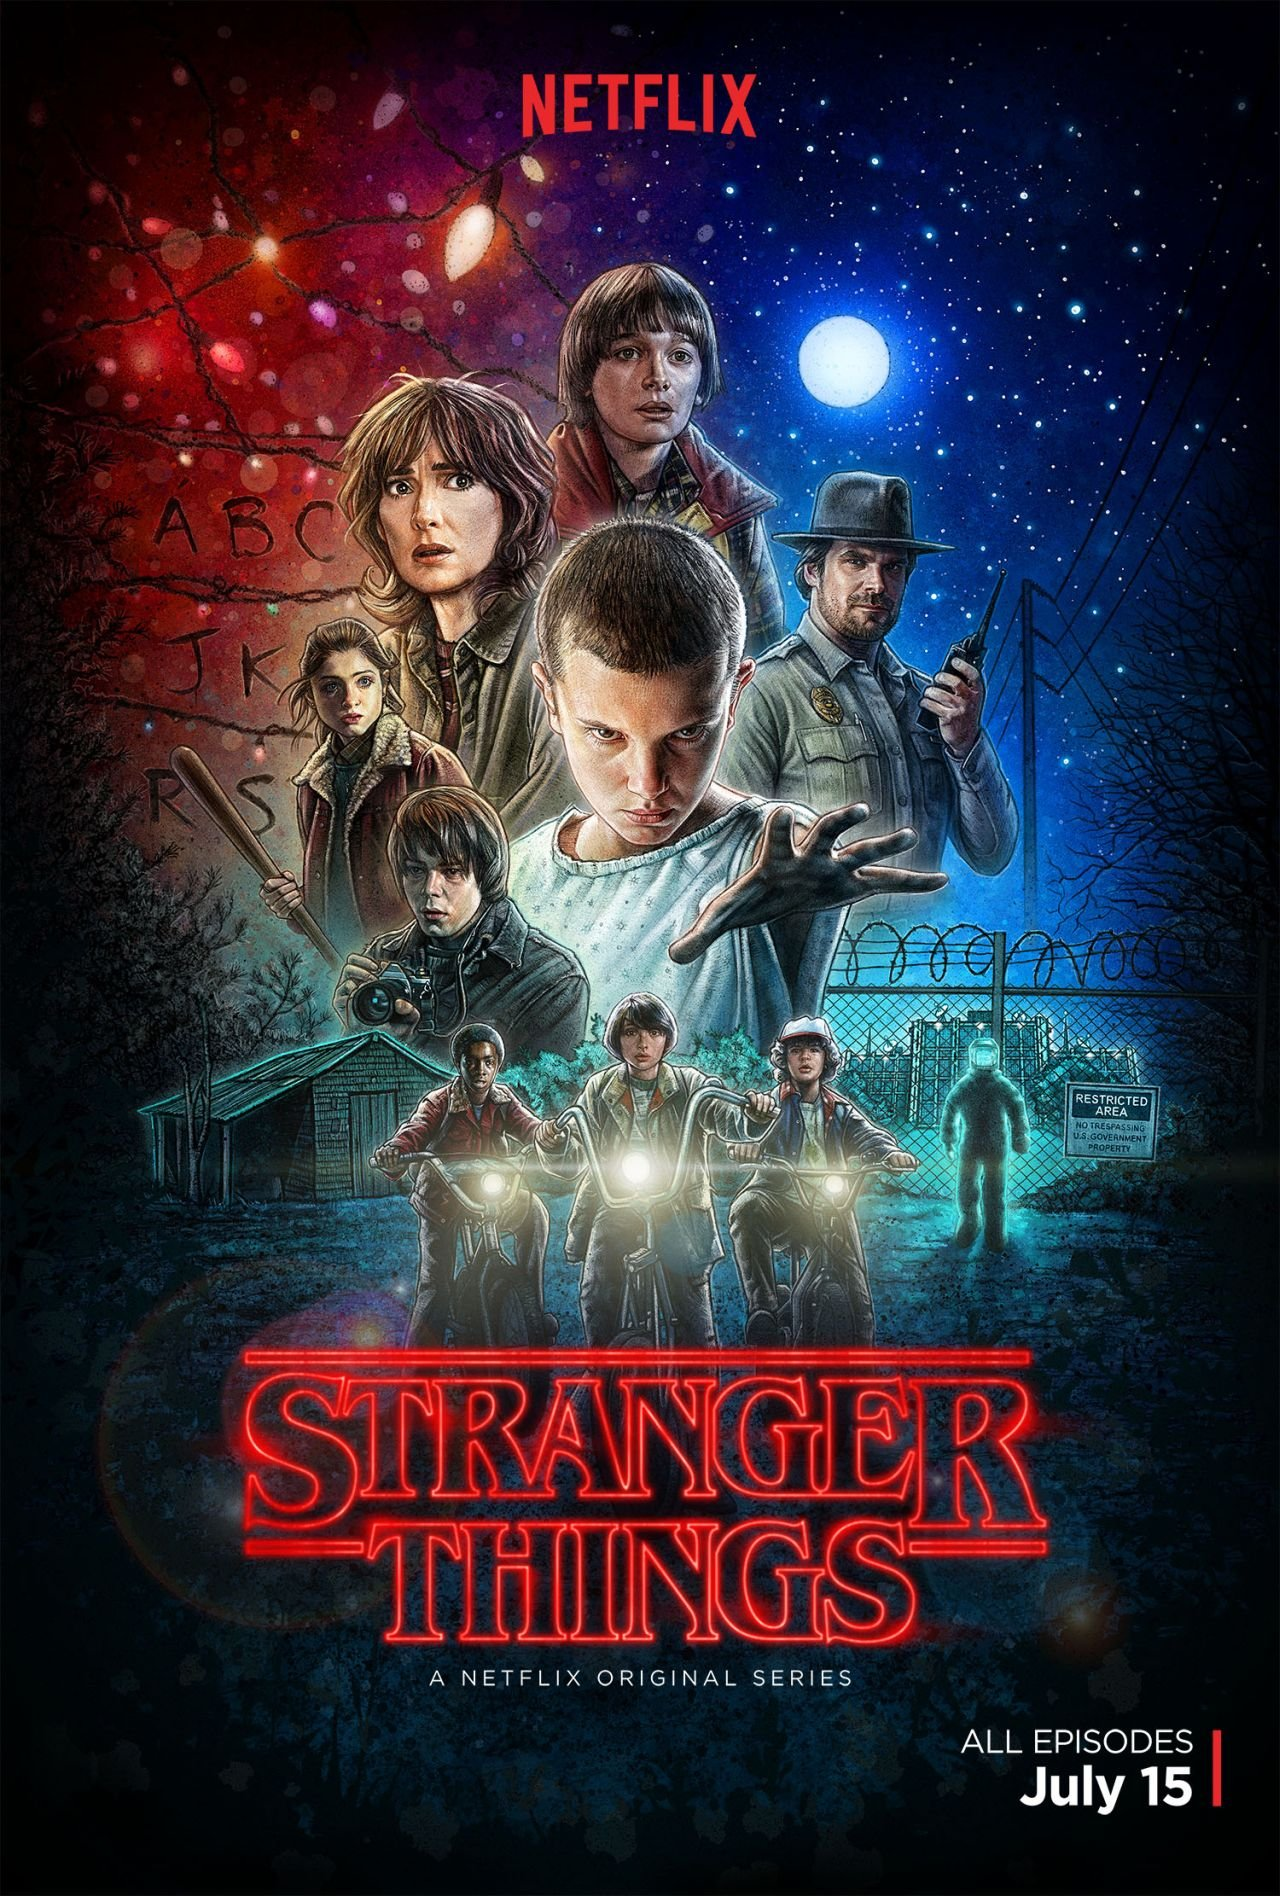 Вышел первый сезон Stranger Things. Мои впечатления. - Изображение 1